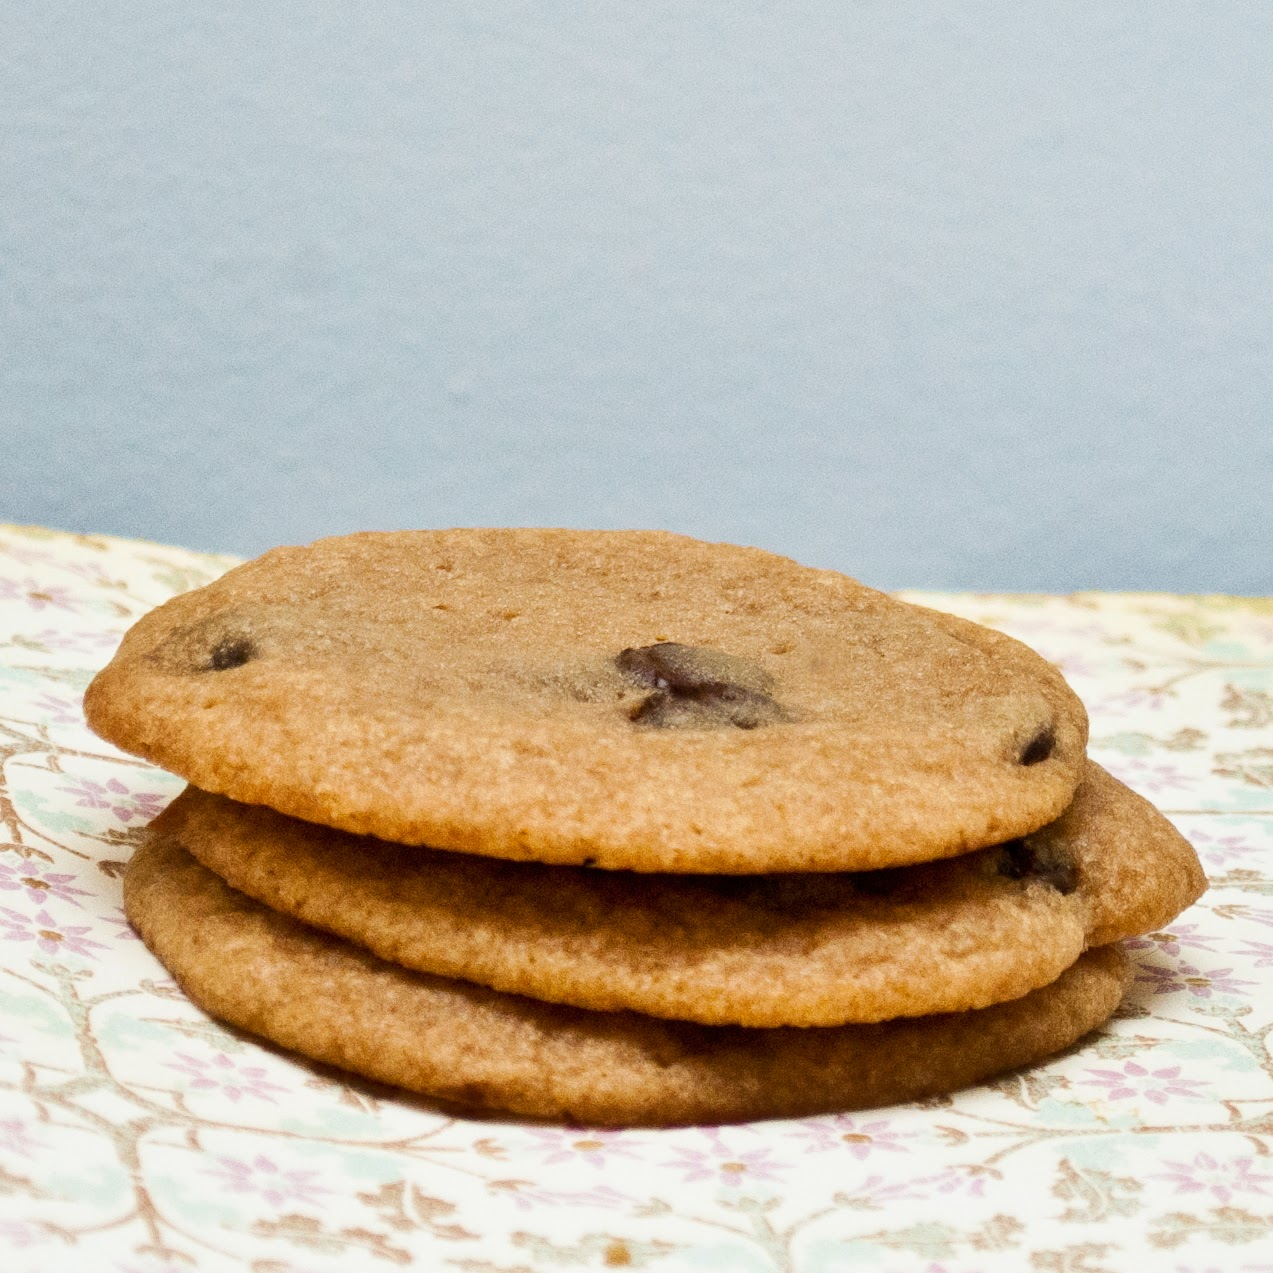 By the way, I didn't have chocolate chips on hand when baking the ...